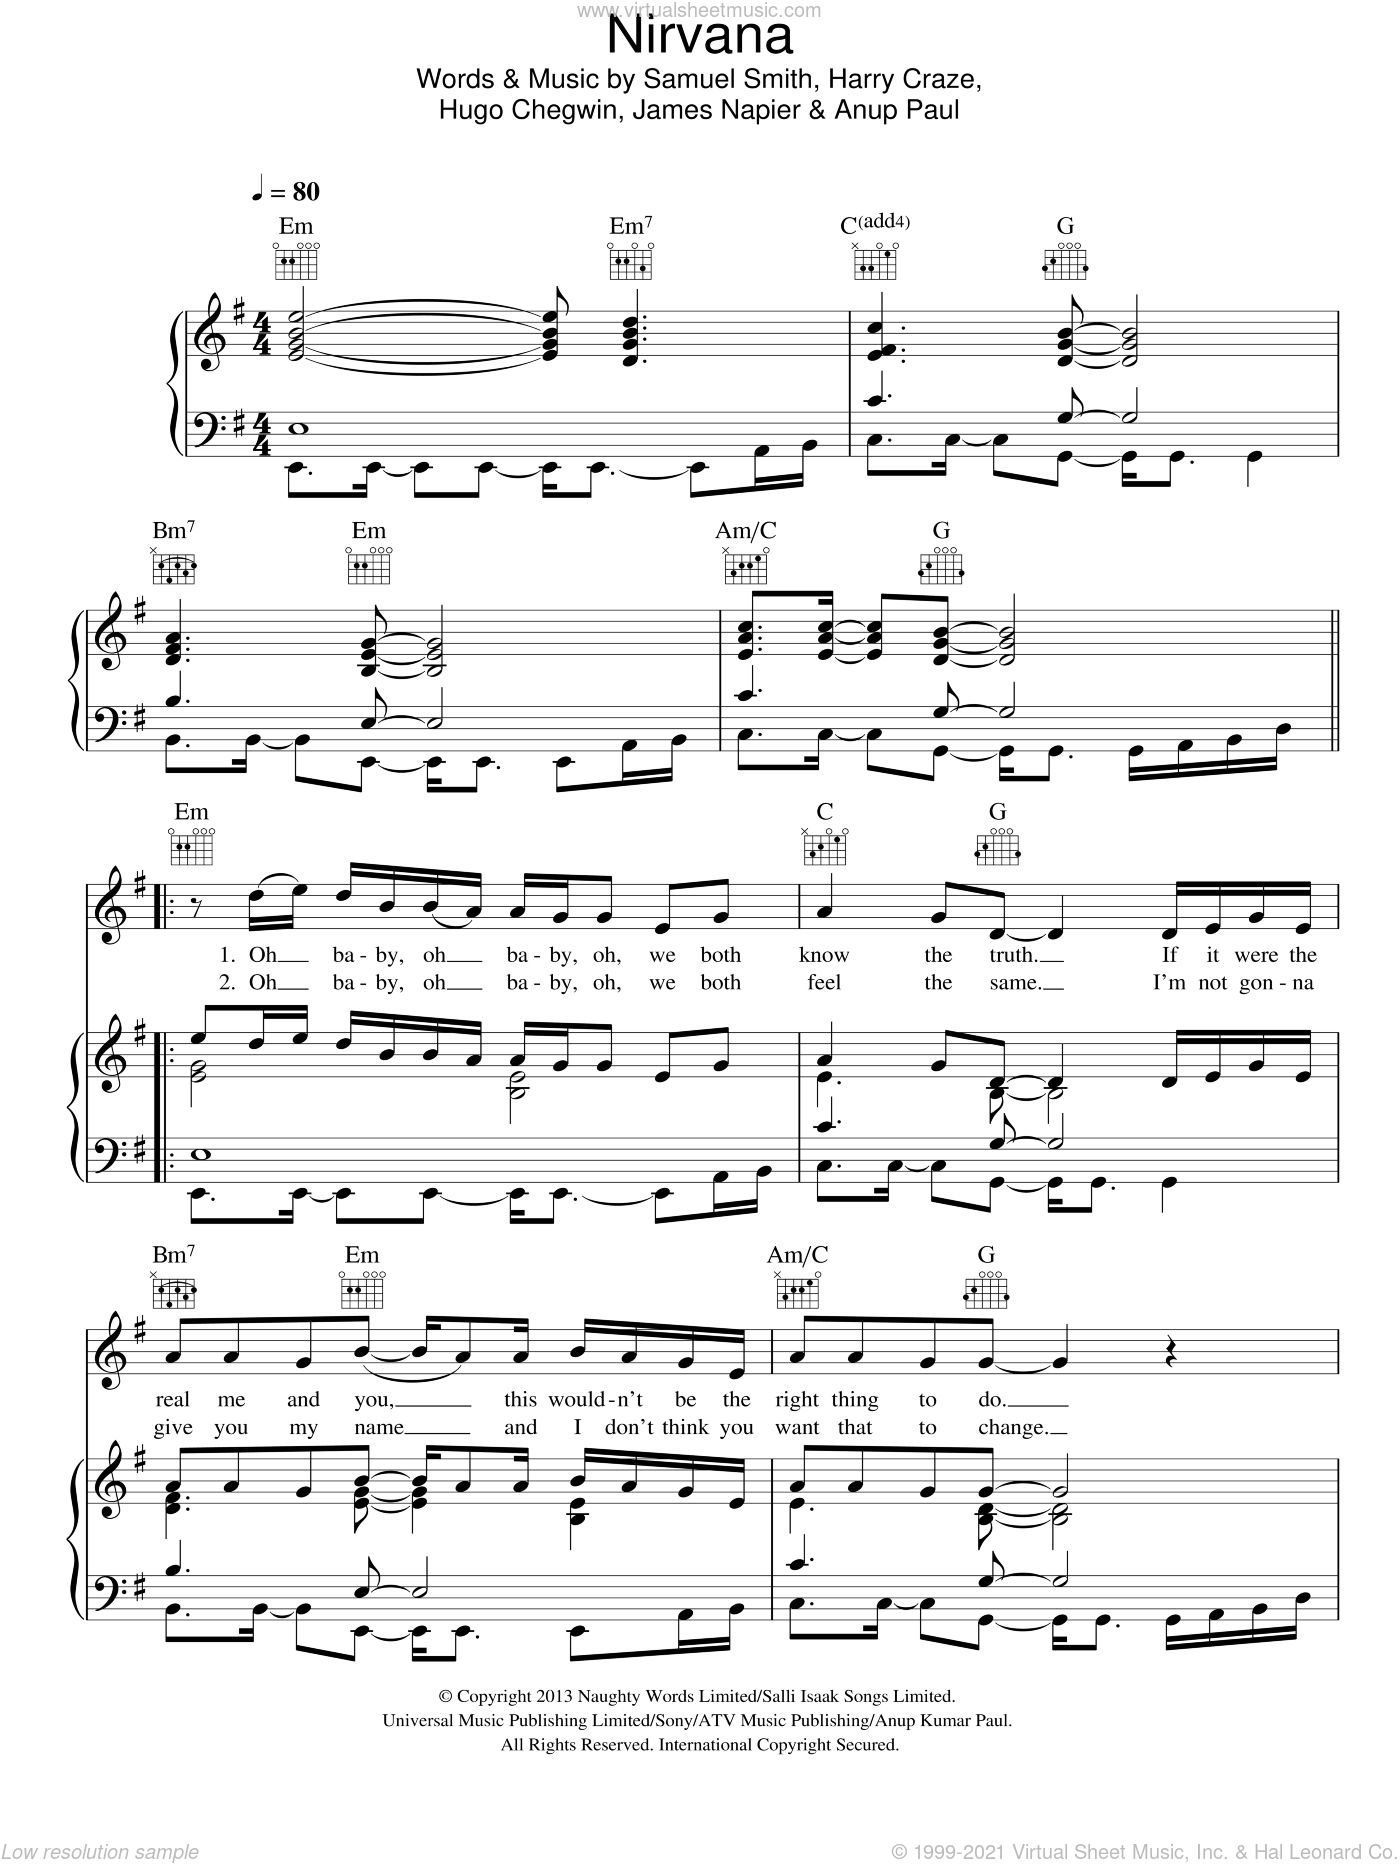 Nirvana sheet music for voice, piano or guitar by Samuel Smith, Sam Smith, Harry Craze, Hugo Chegwin and James Napier. Score Image Preview.